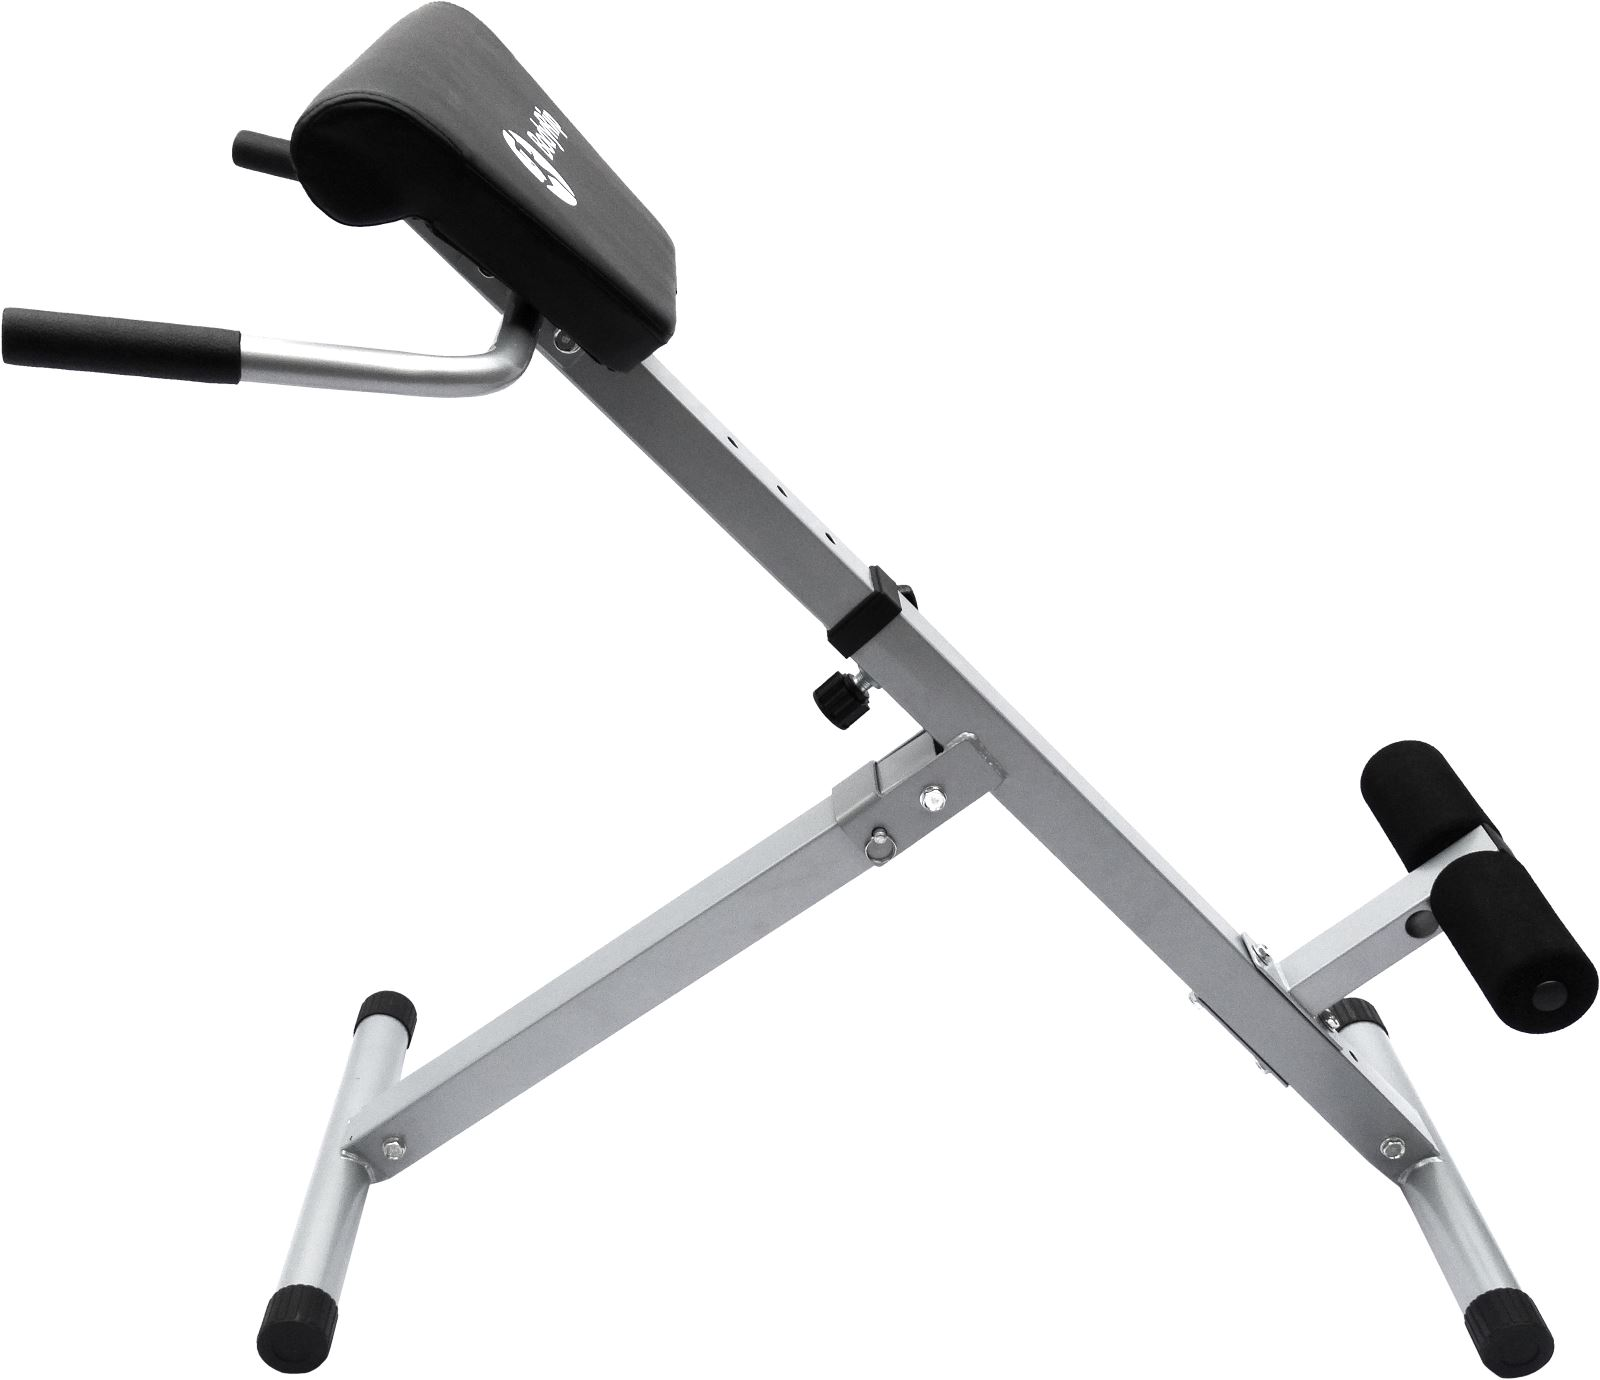 Fitness Back Hyper Extension Exercise Bench Hyperextension Roman Chair Lower Ebay